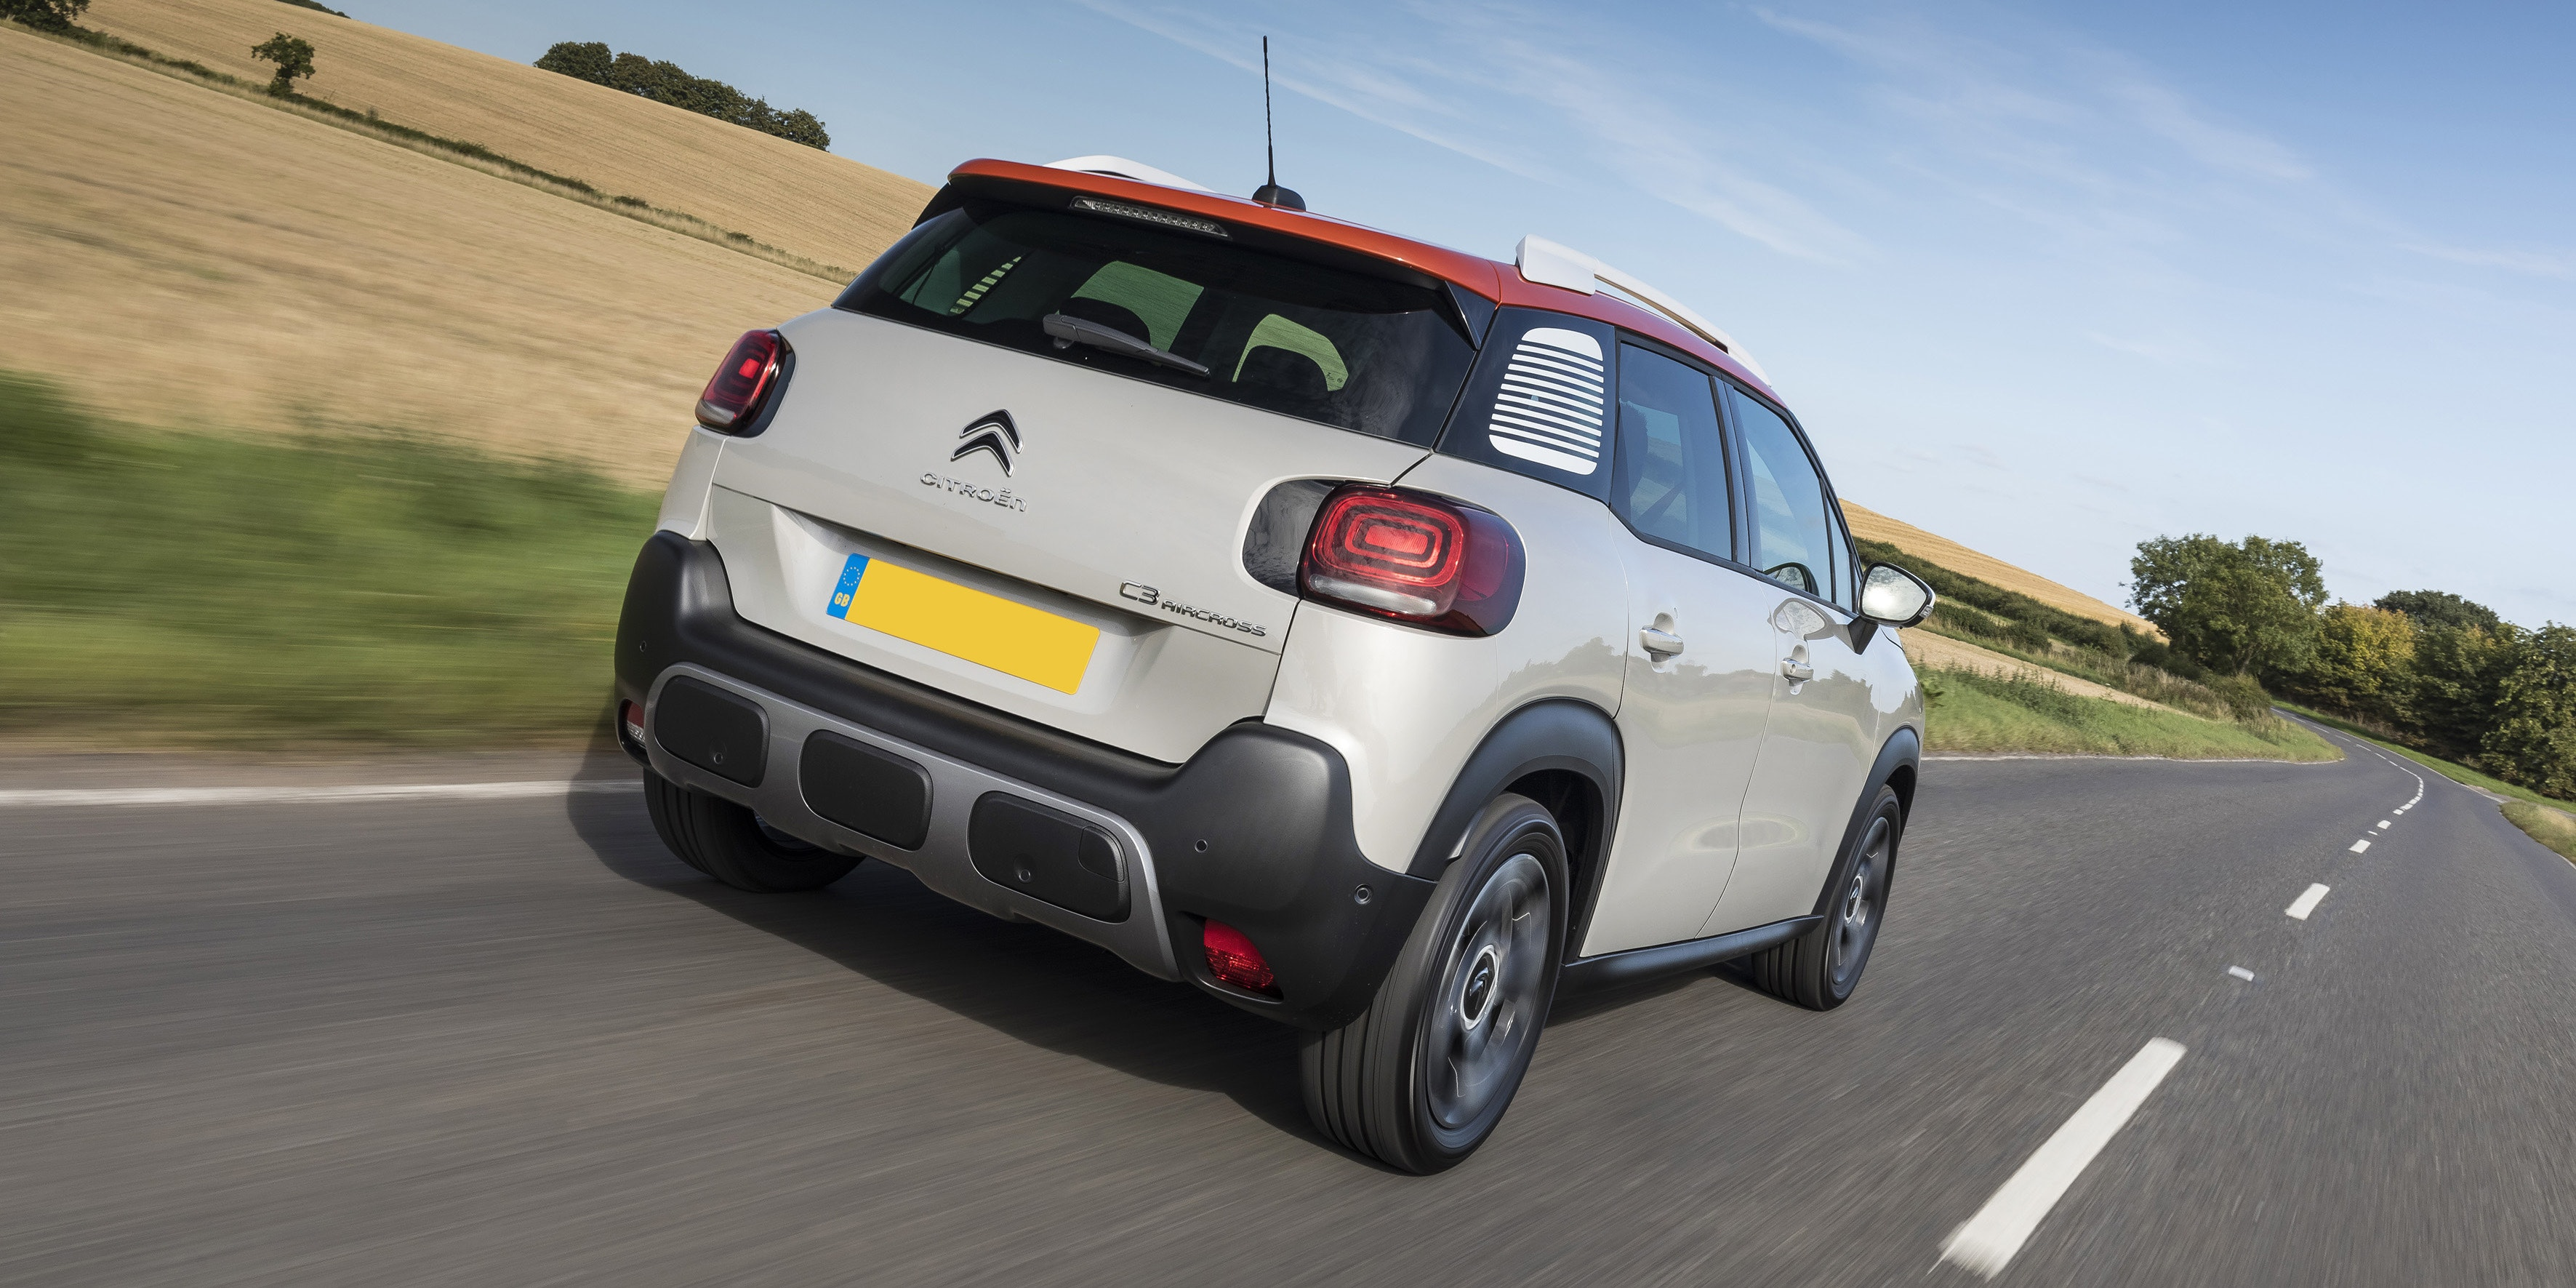 The C3 Aircross is a comfortable cruiser